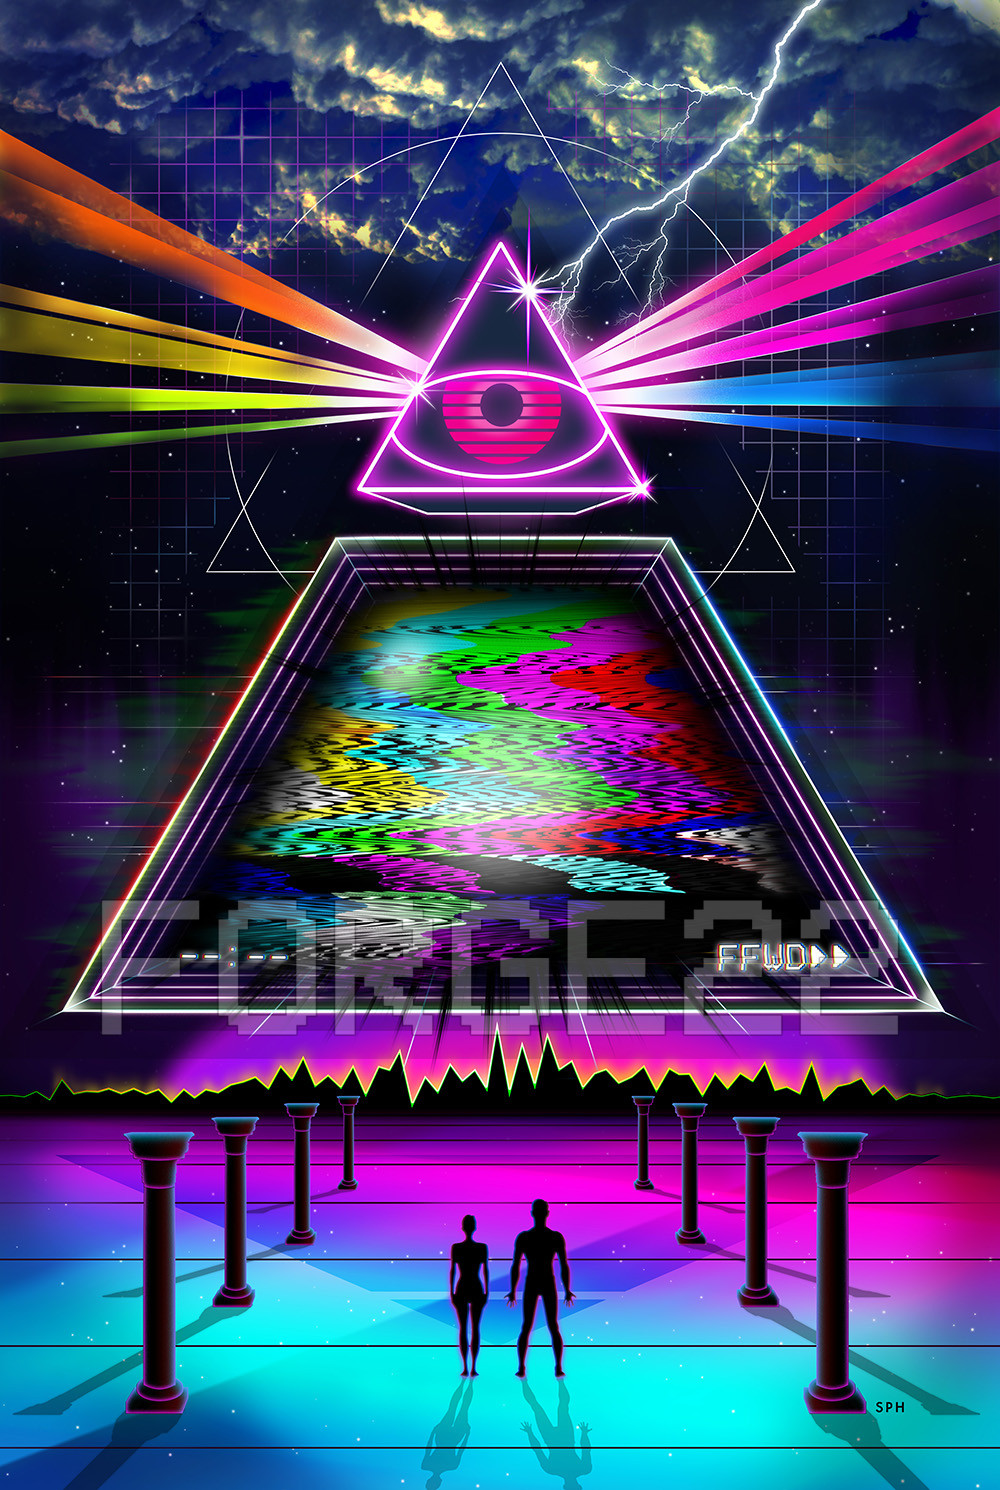 Synthwave Outrun Visual Art Design - Neon 80's grid future ...